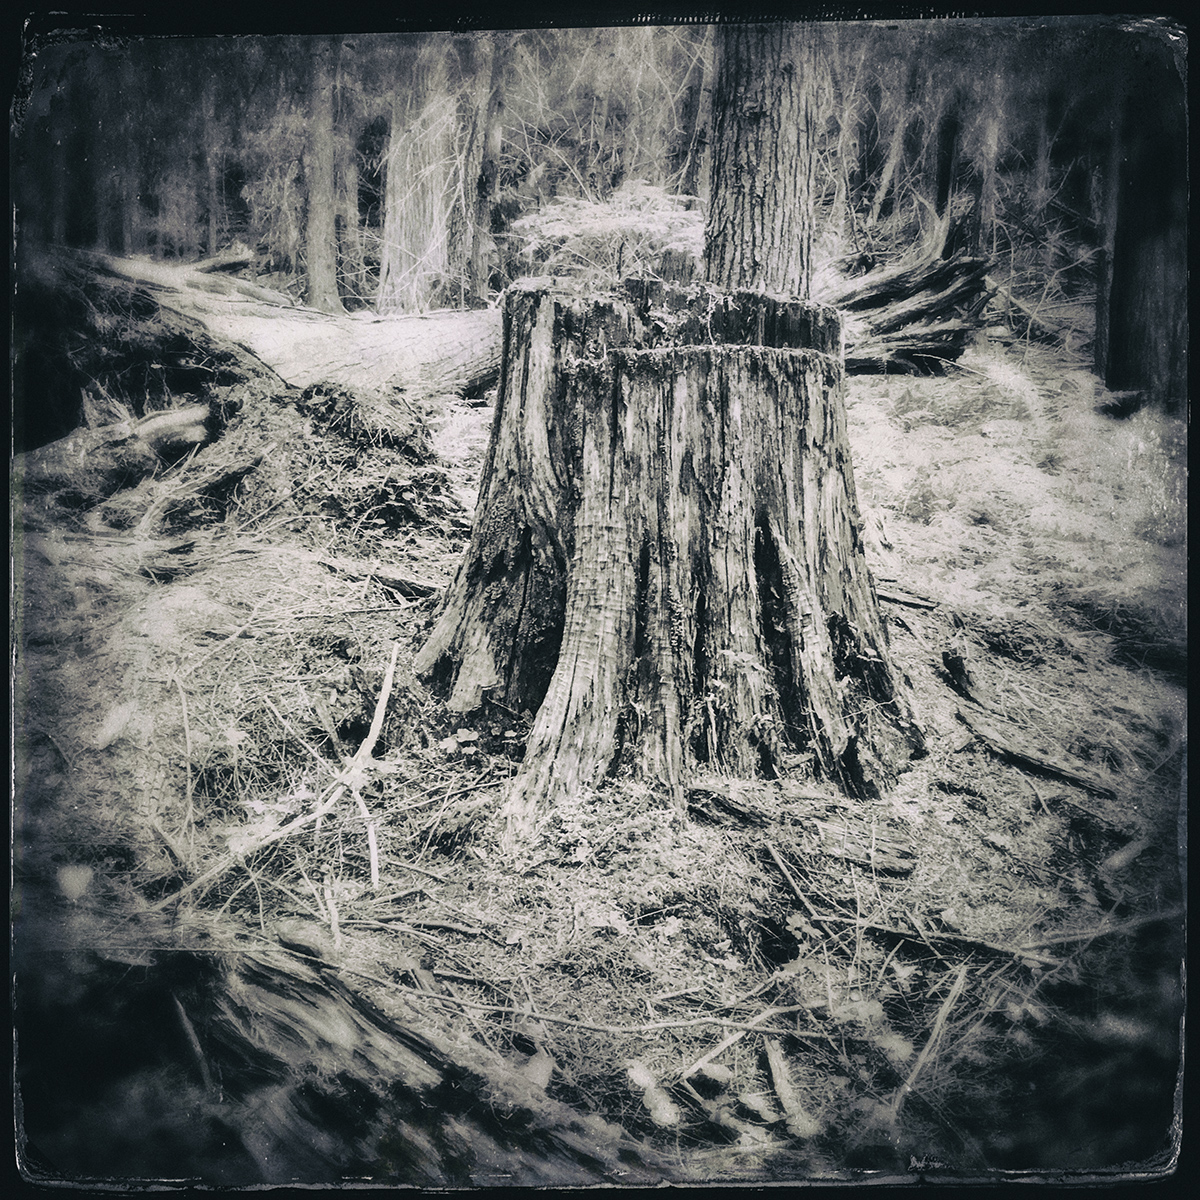 Forest of Lost Trees 6 72 dpi .jpg